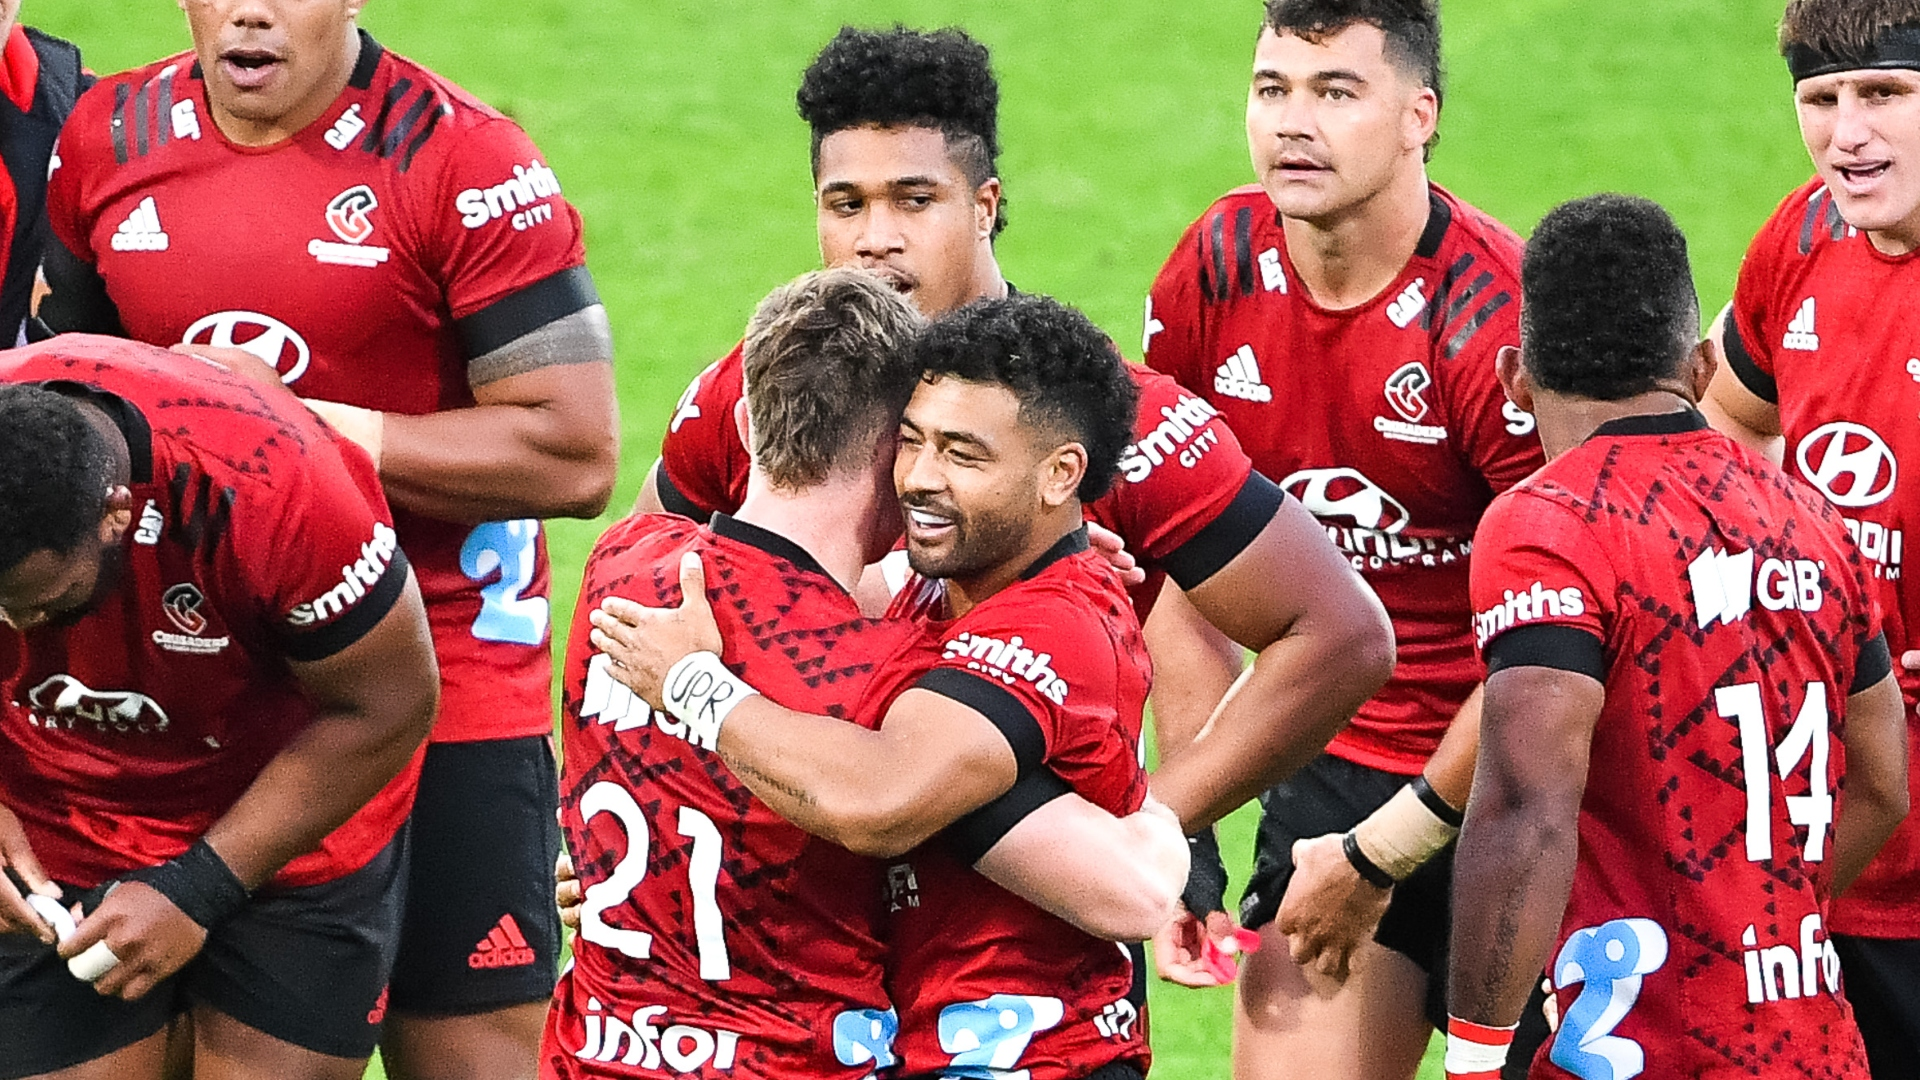 Hurricanes 30-27 Crusaders: Havili's drop goal seals golden-point triumph